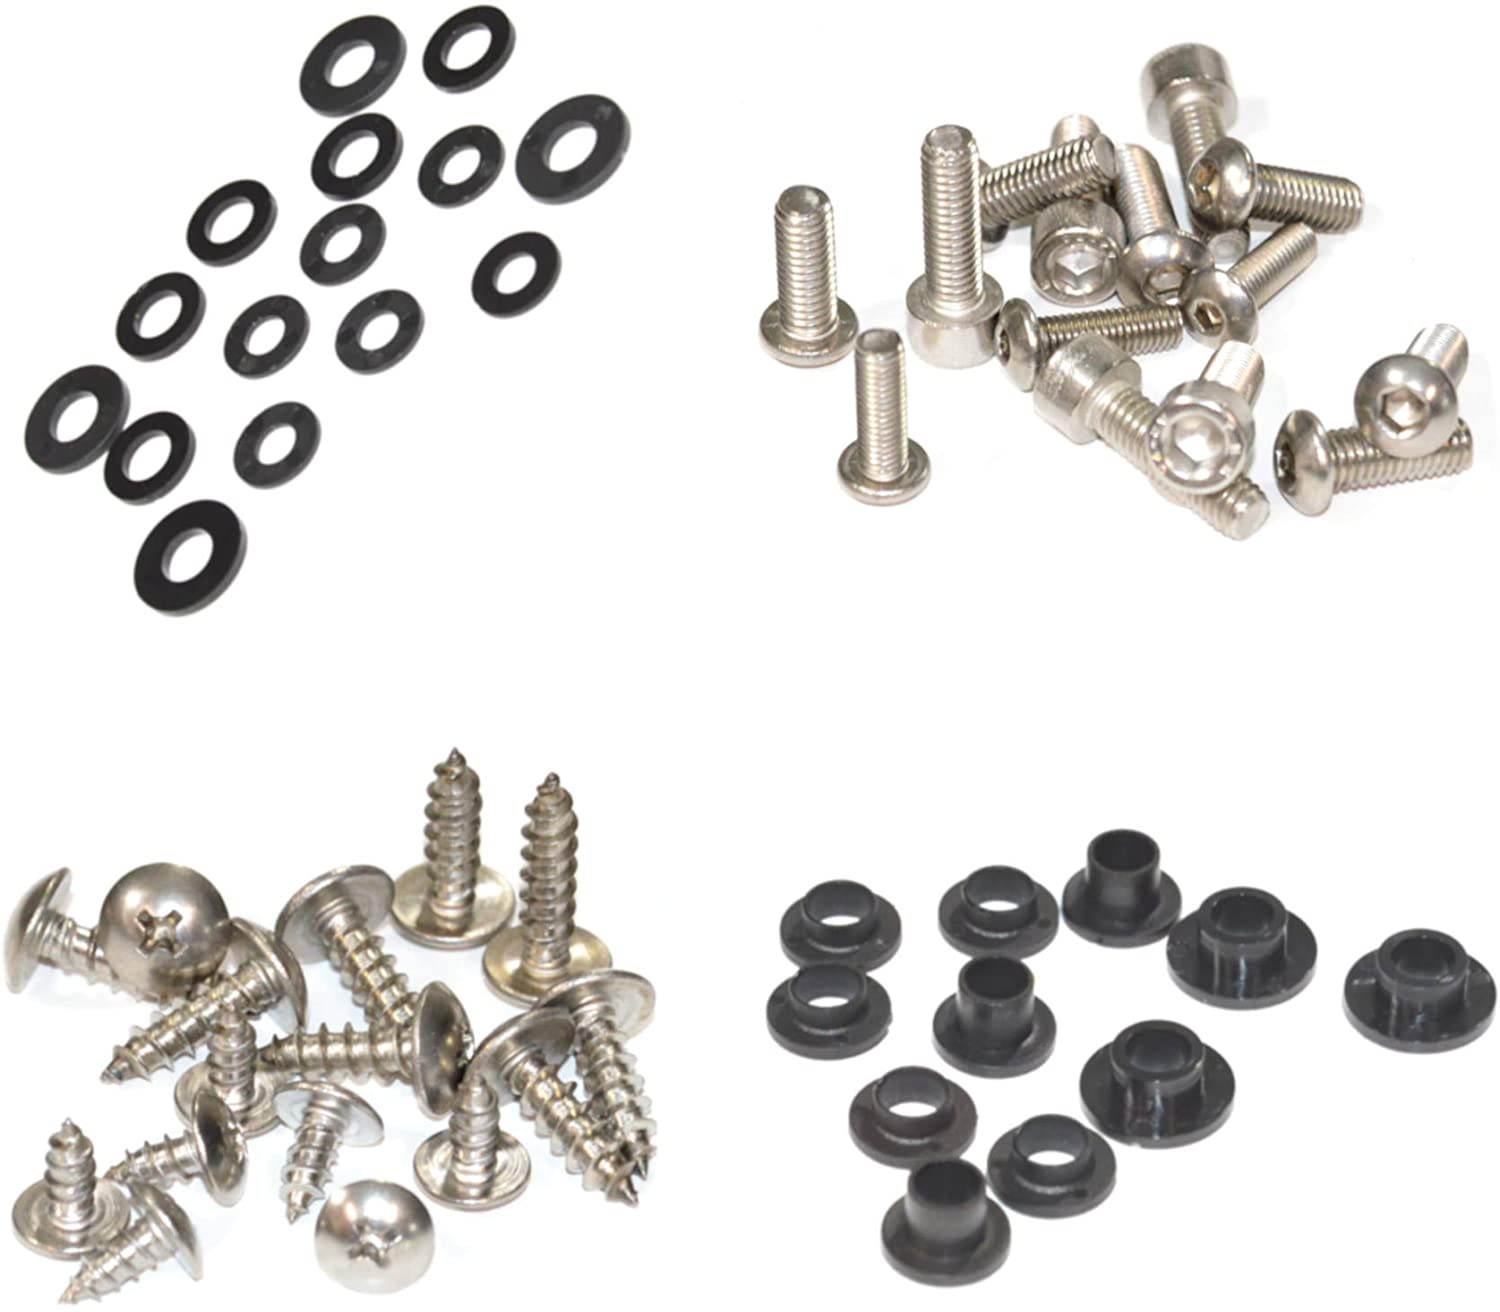 Standard Motorcycle Fairing Bolt Kit For Kawasaki Ninja ZX-10R 2004-2005 Body Screws, Fasteners, and Hardware